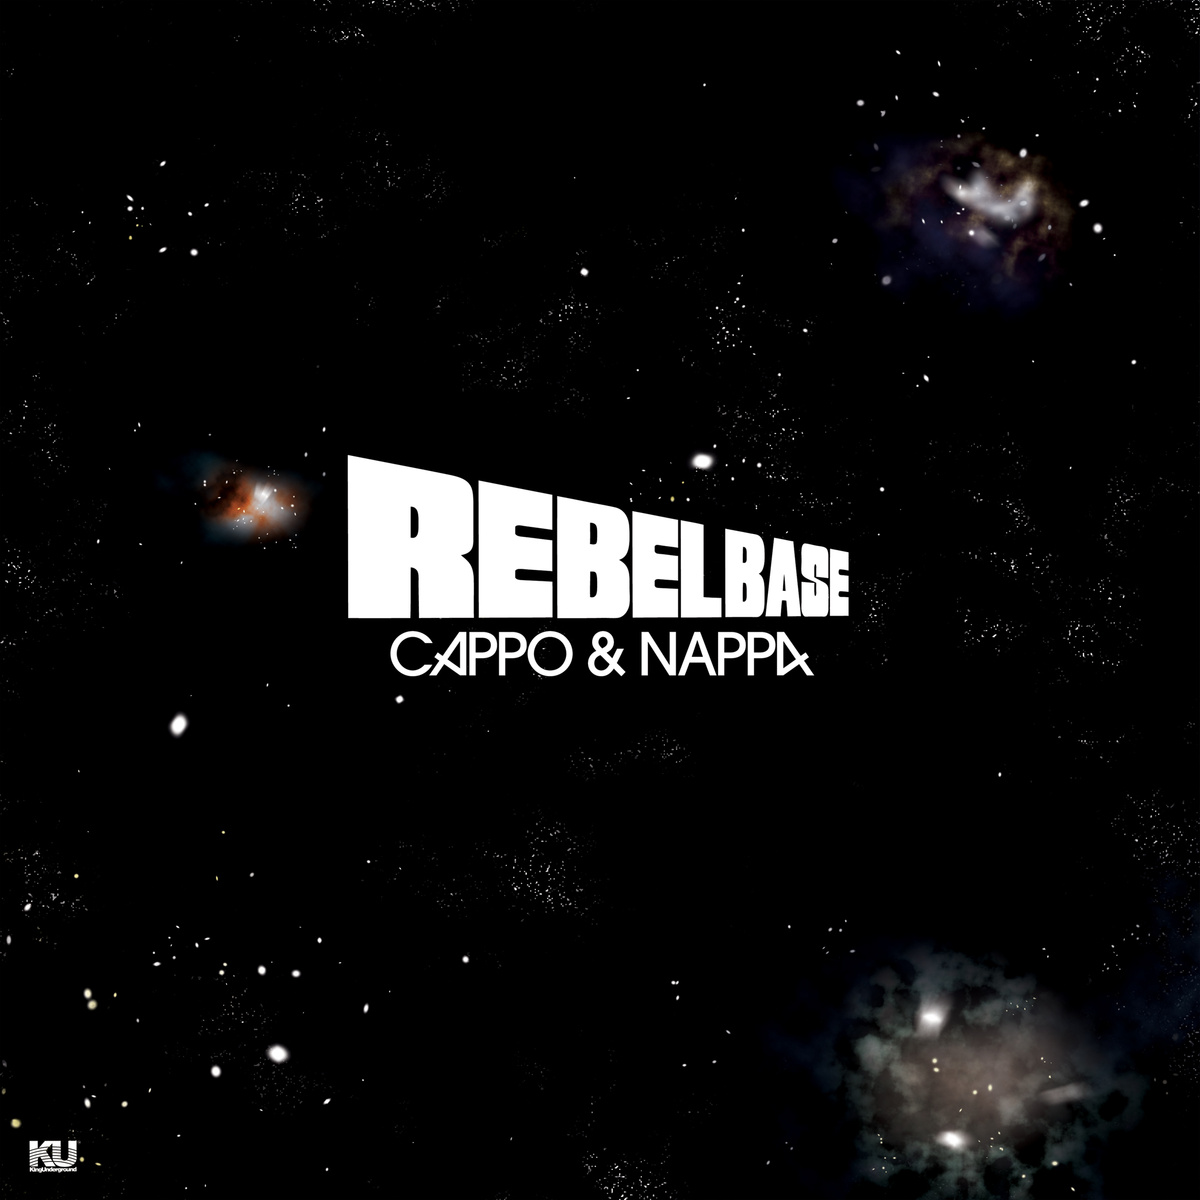 Cappo___nappa_presenta_rebel_base